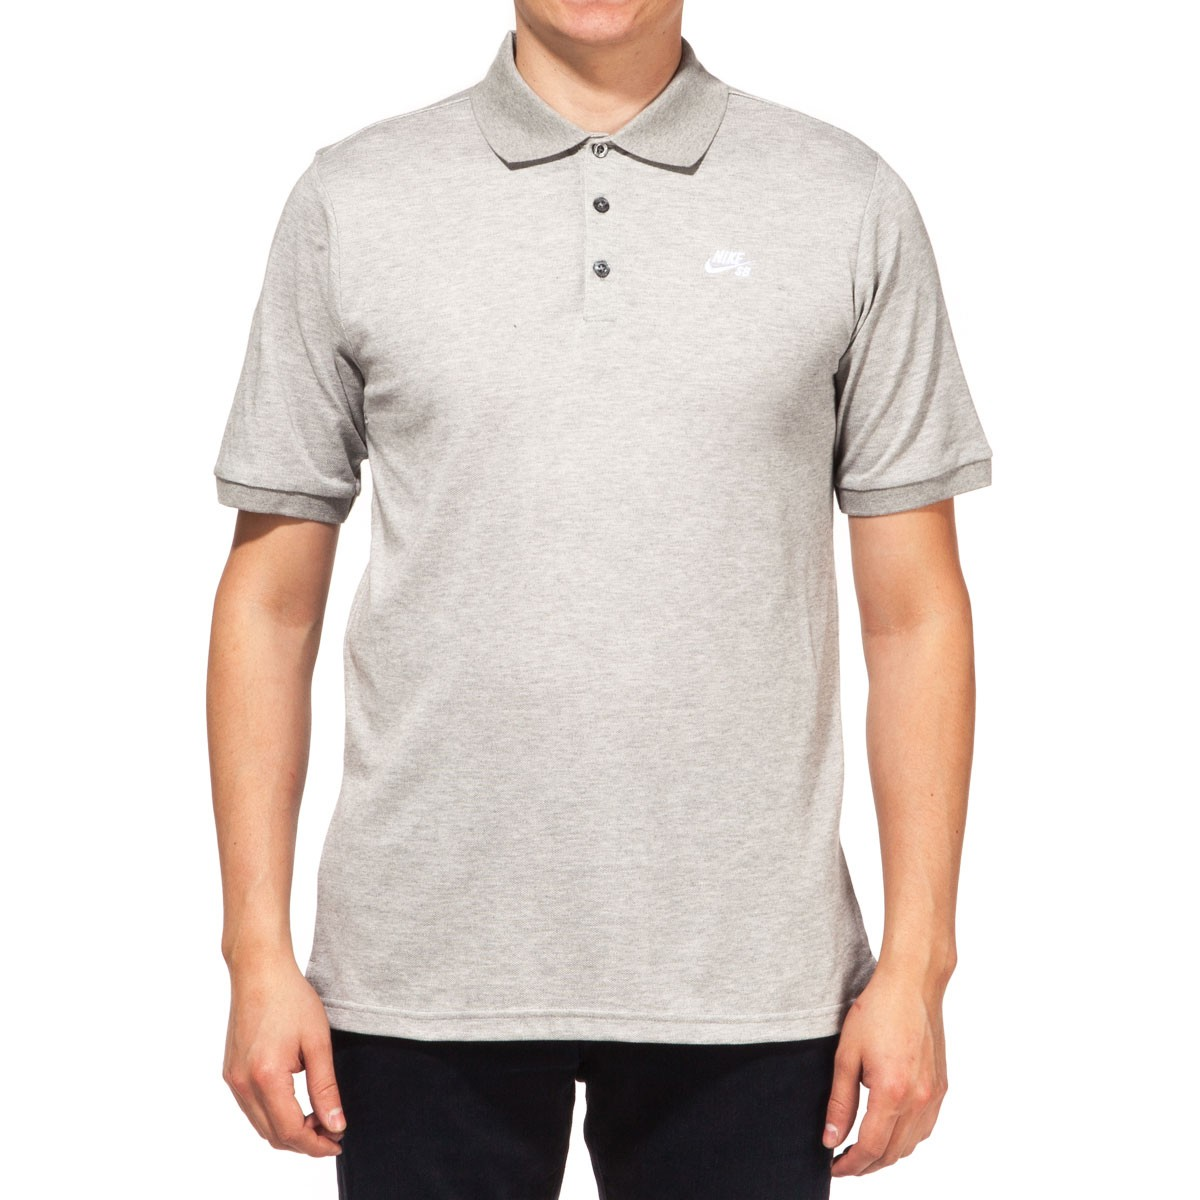 Nike Sb Dri Fit Pique Polo Shirt Dark Grey Heather White